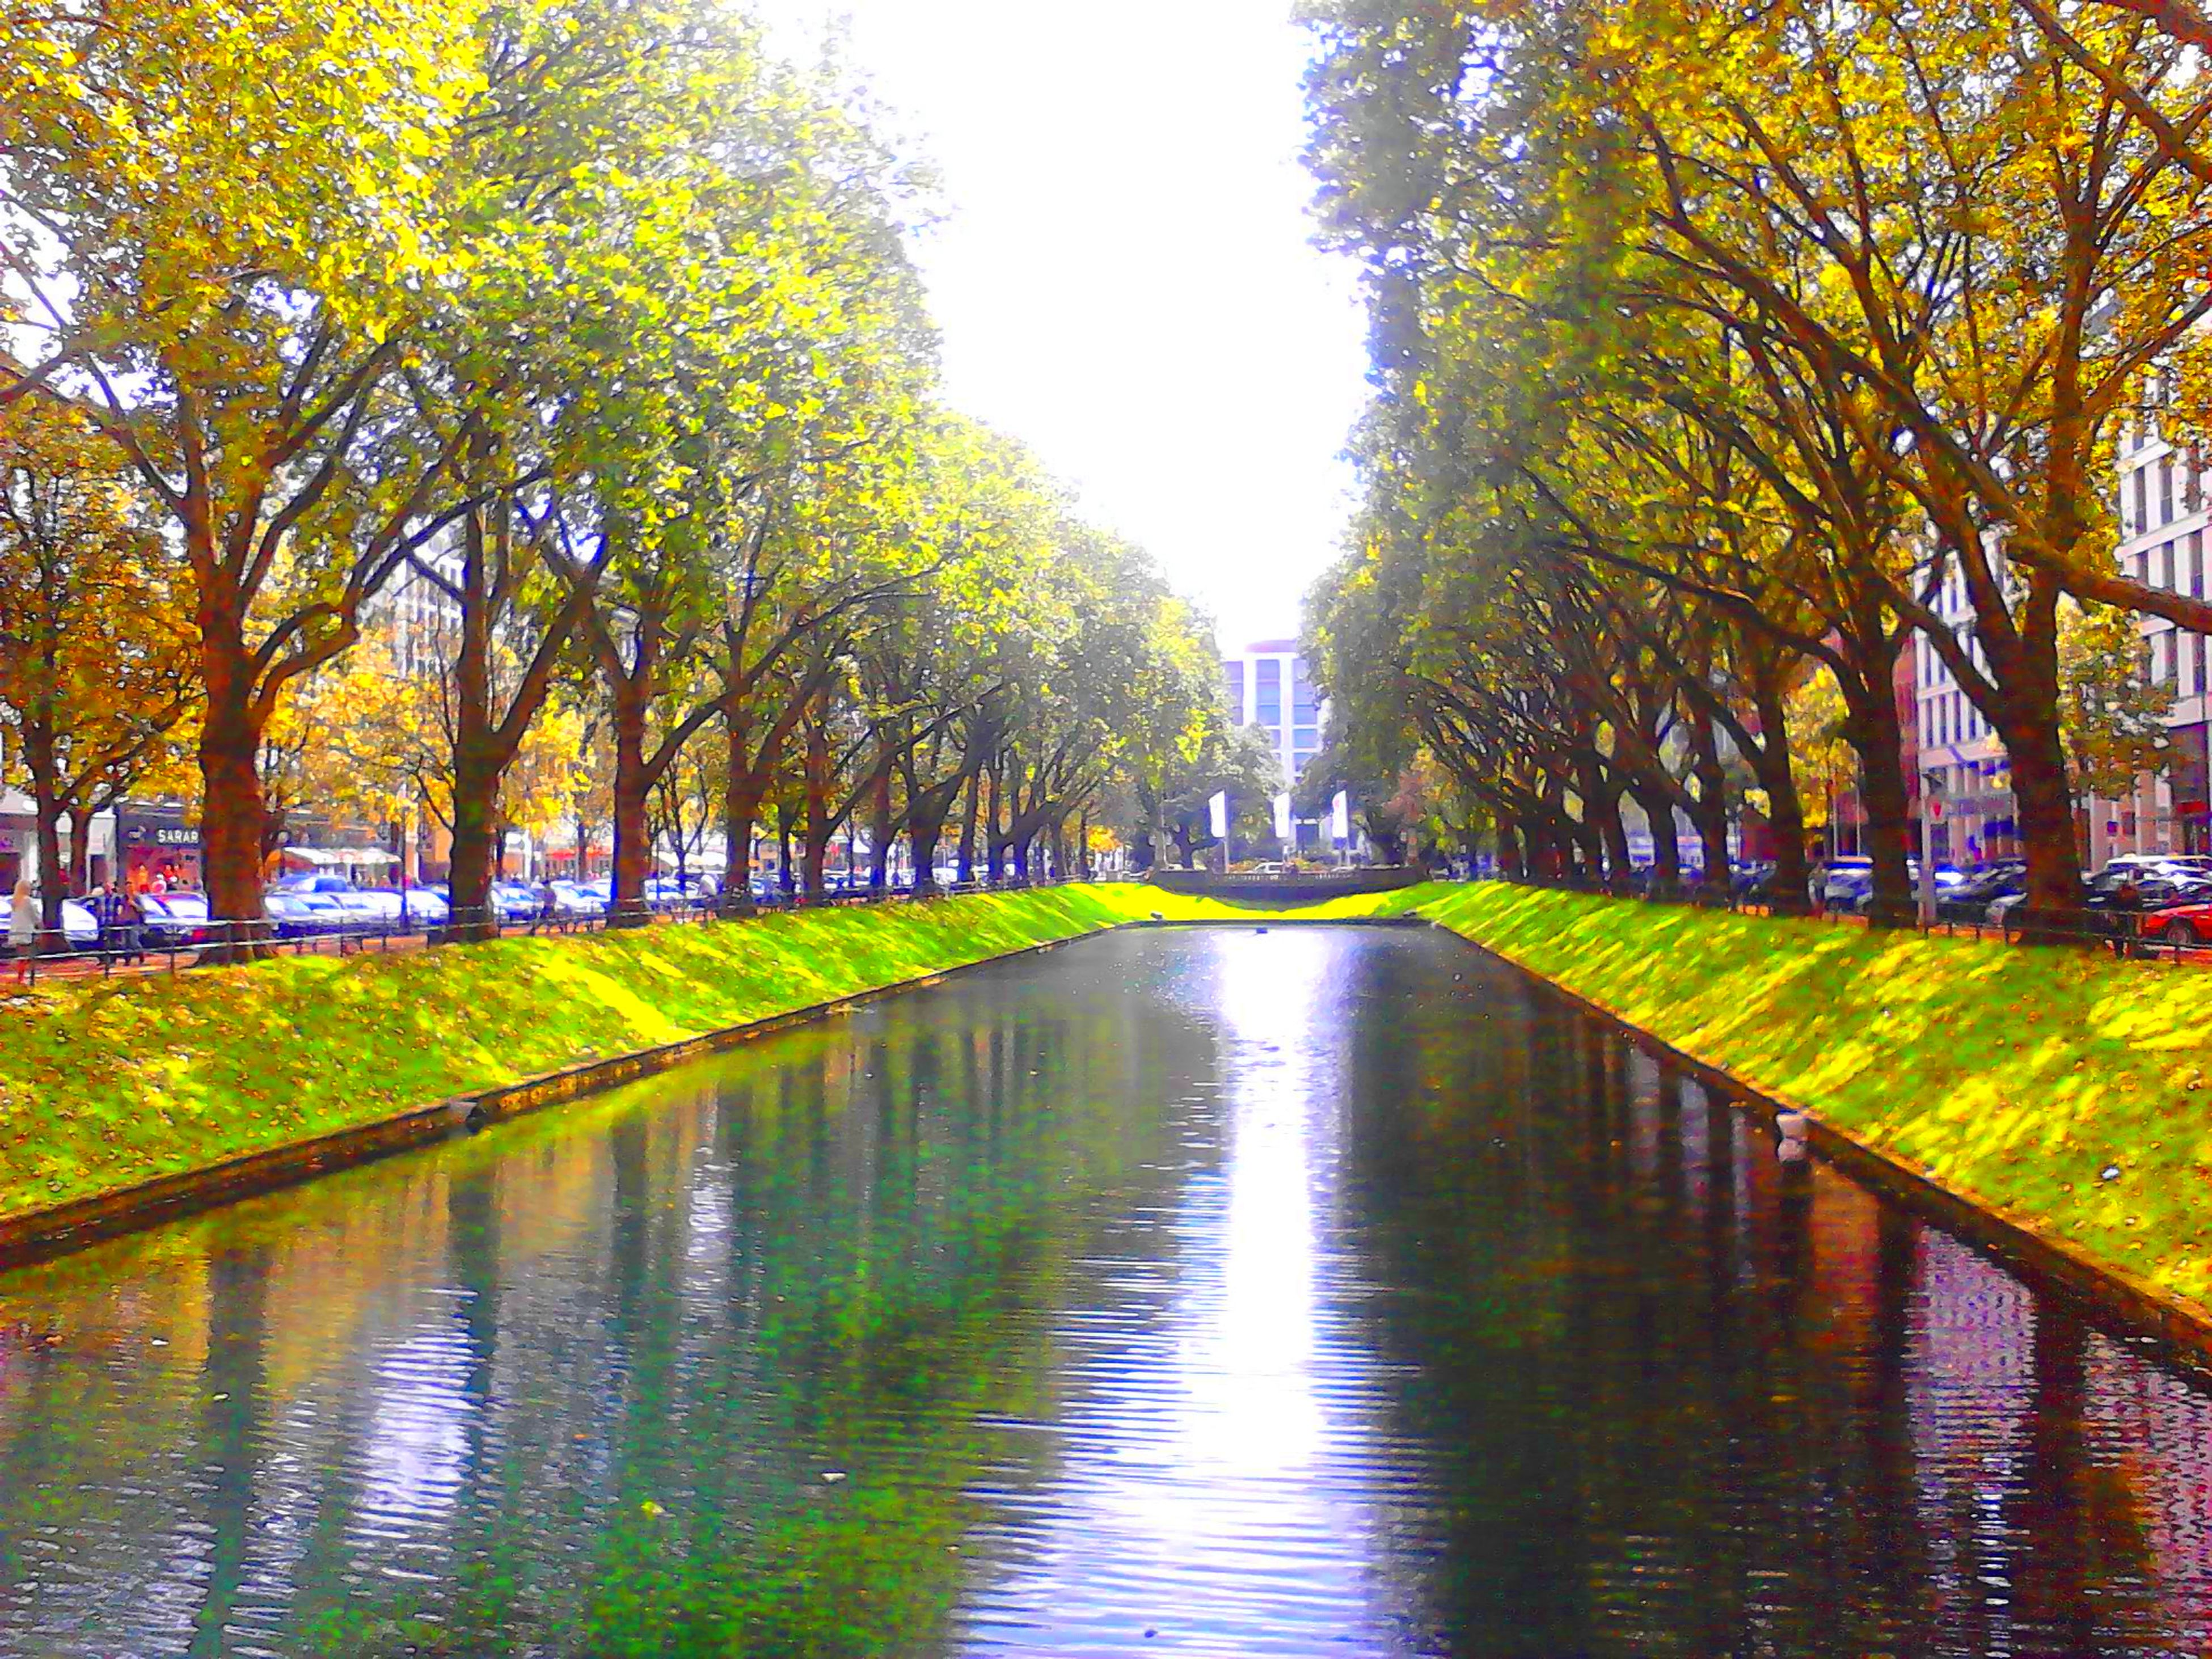 tree, water, canal, green color, park - man made space, tranquility, clear sky, reflection, growth, nature, waterfront, treelined, beauty in nature, diminishing perspective, tranquil scene, sunlight, branch, grass, incidental people, scenics